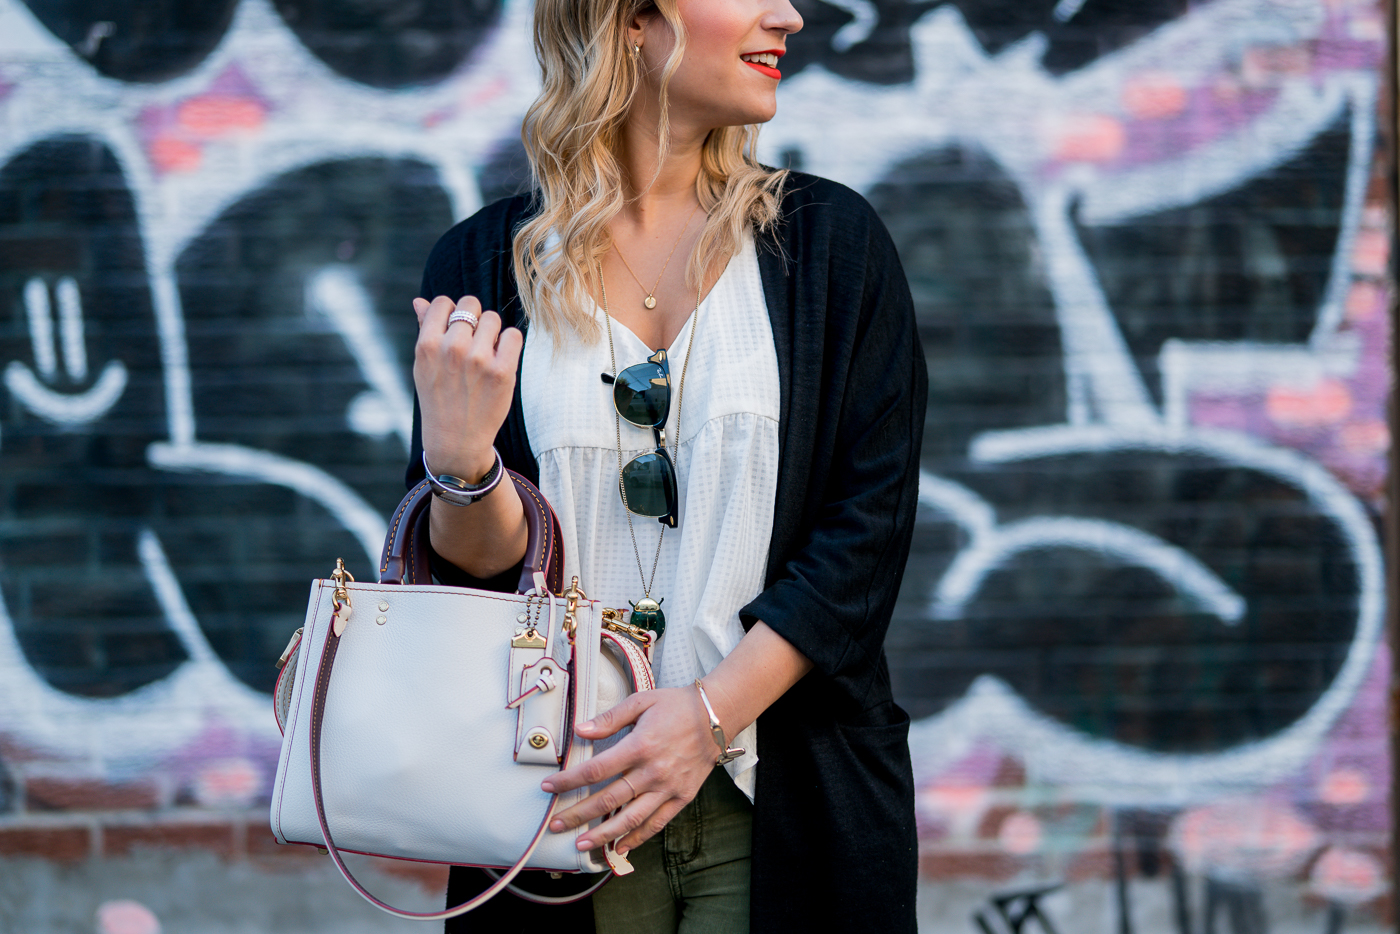 Canadian fashion blogger is wearing the Coach Rogue bag for spring